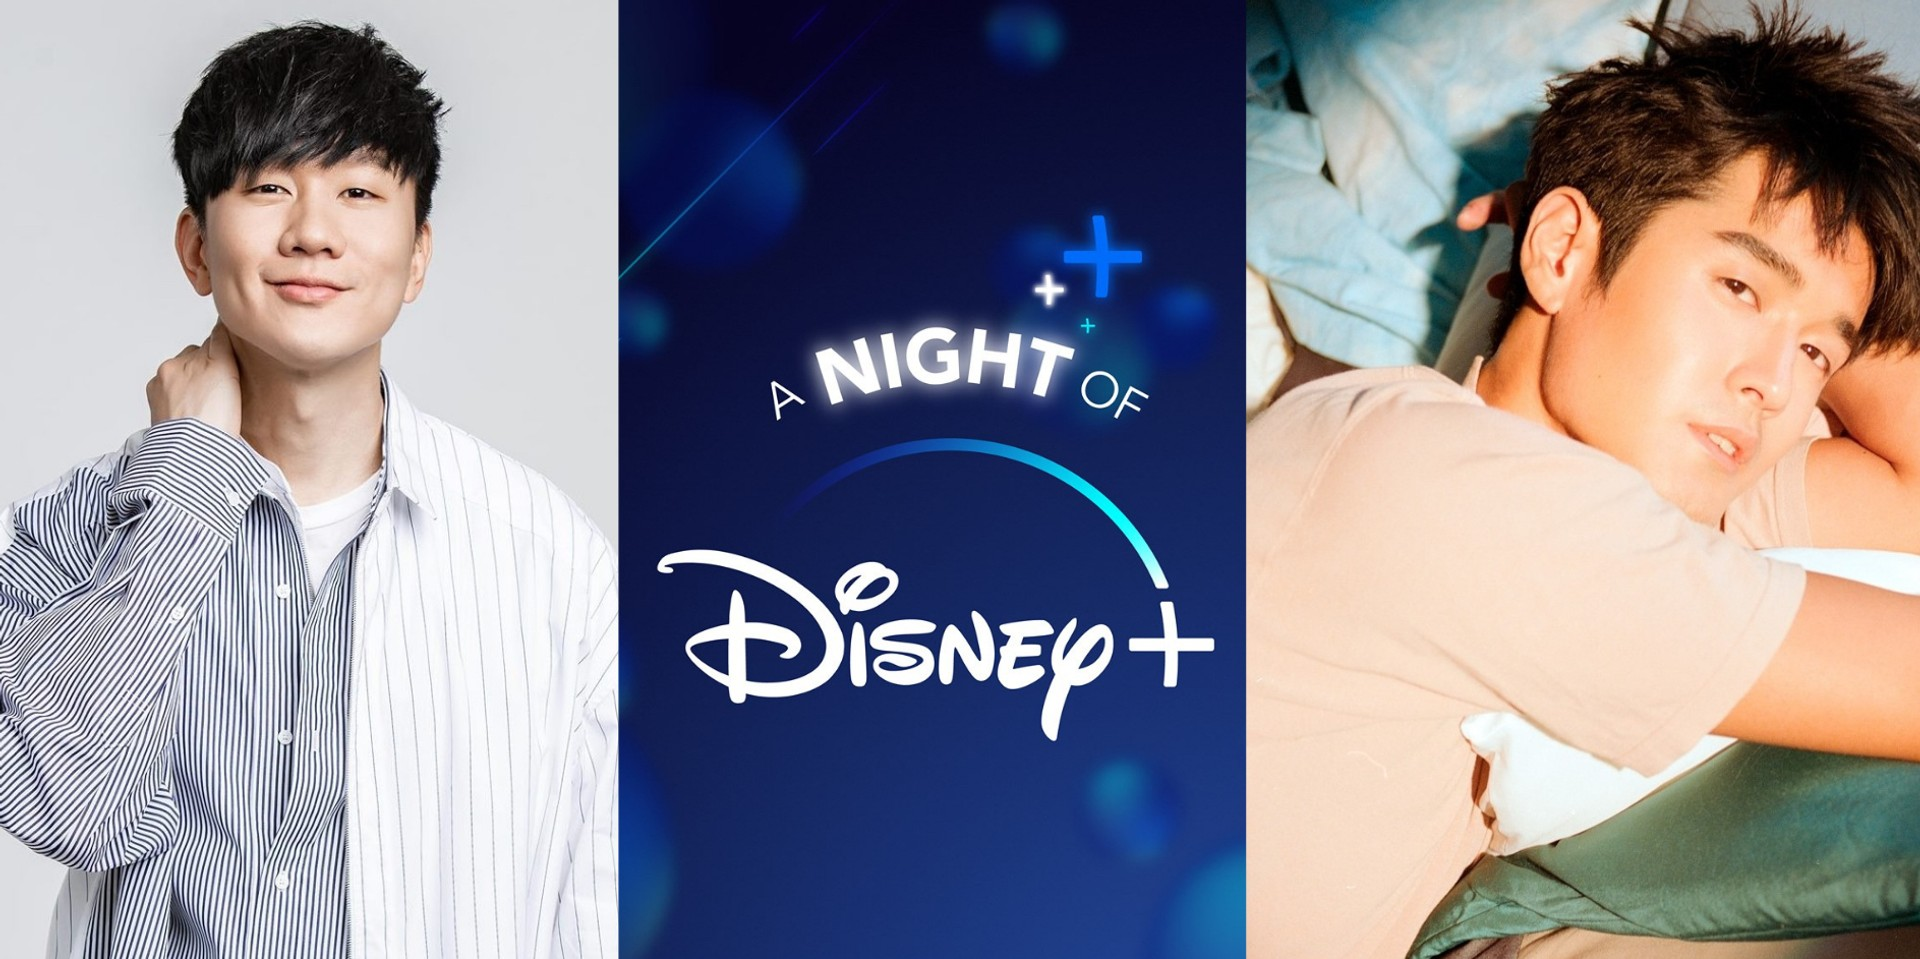 JJ Lin, Nathan Hartono, and more to perform at Disney+ launch event in Singapore